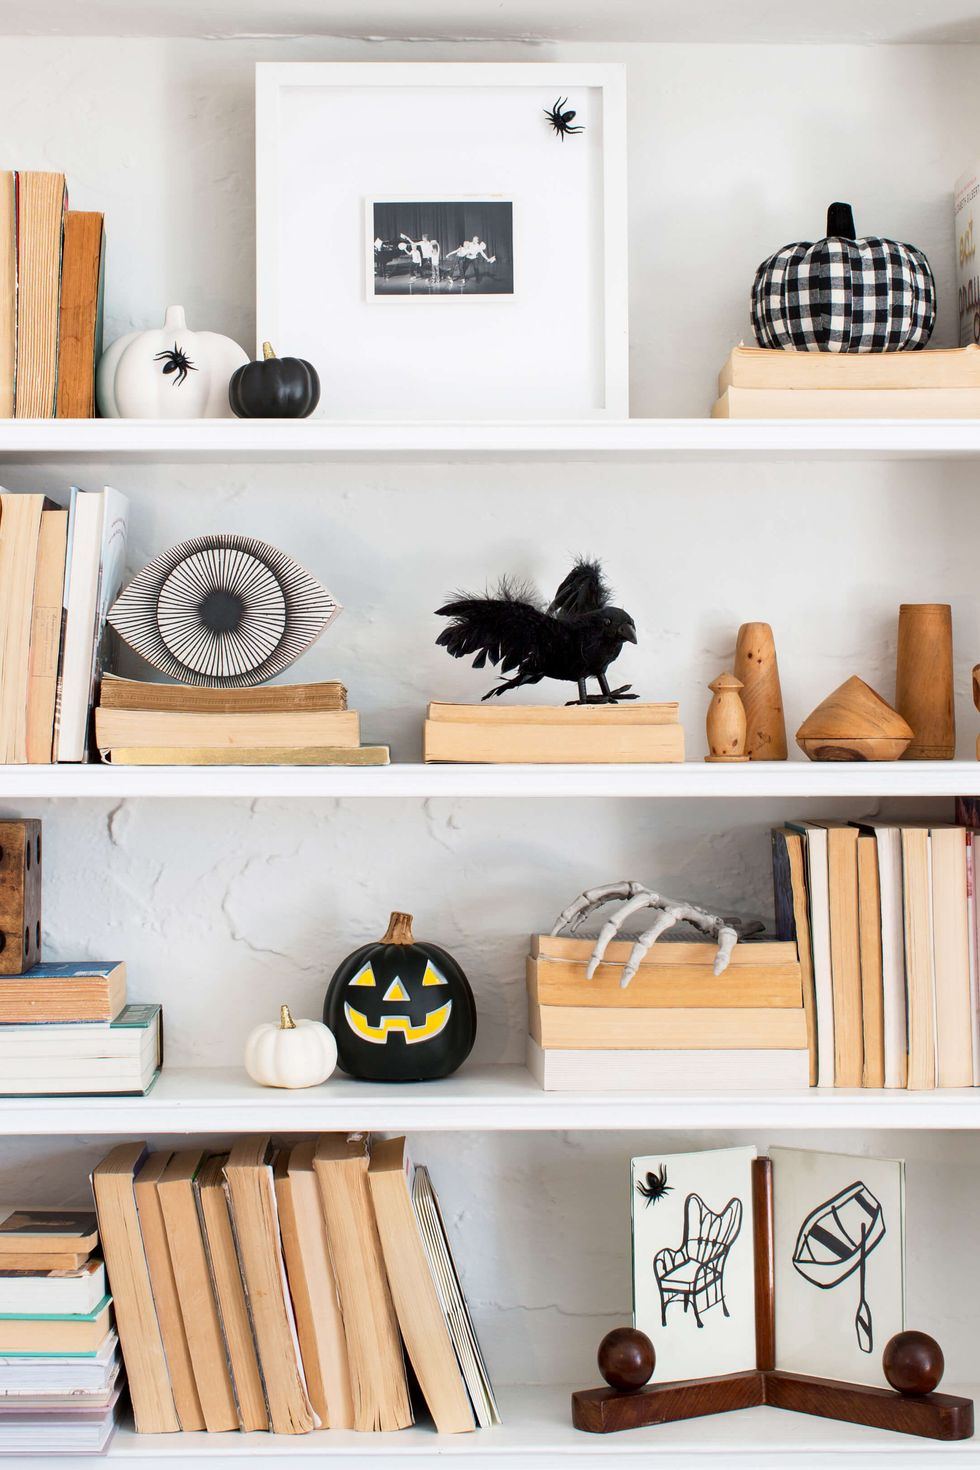 10 Stylish And Modern Halloween Decor Ideas For Your Home_3 halloween decor ideas 10 Stylish And Modern Halloween Decor Ideas For Your Home 10 Stylish And Modern Halloween Decor Ideas For Your Home 3